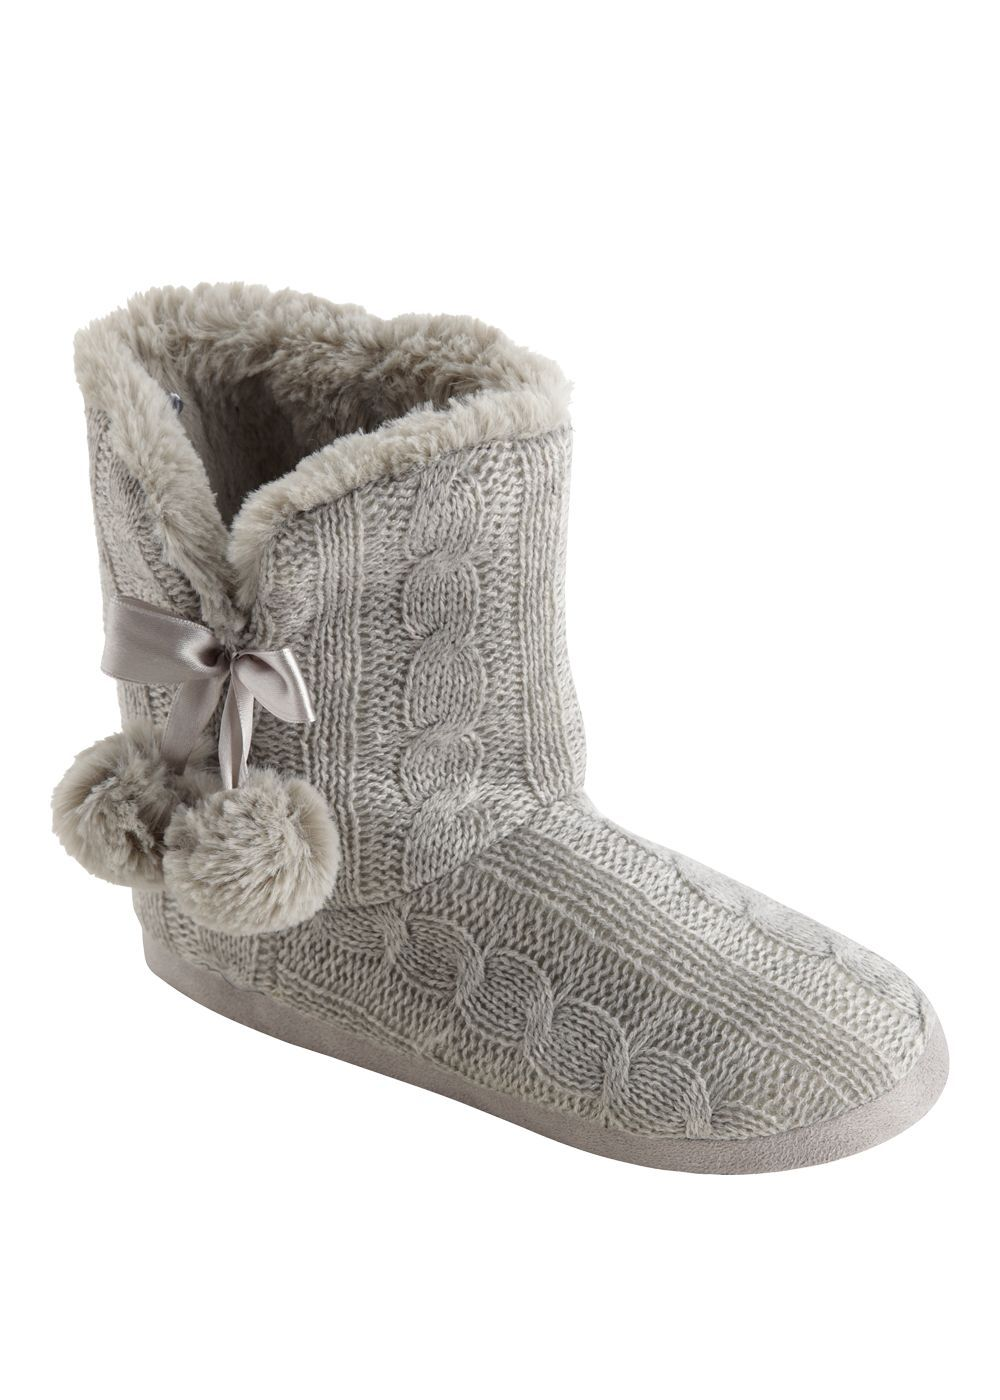 Inspire Me Shoess Pinterest Slipper Boots Cable Knitting And